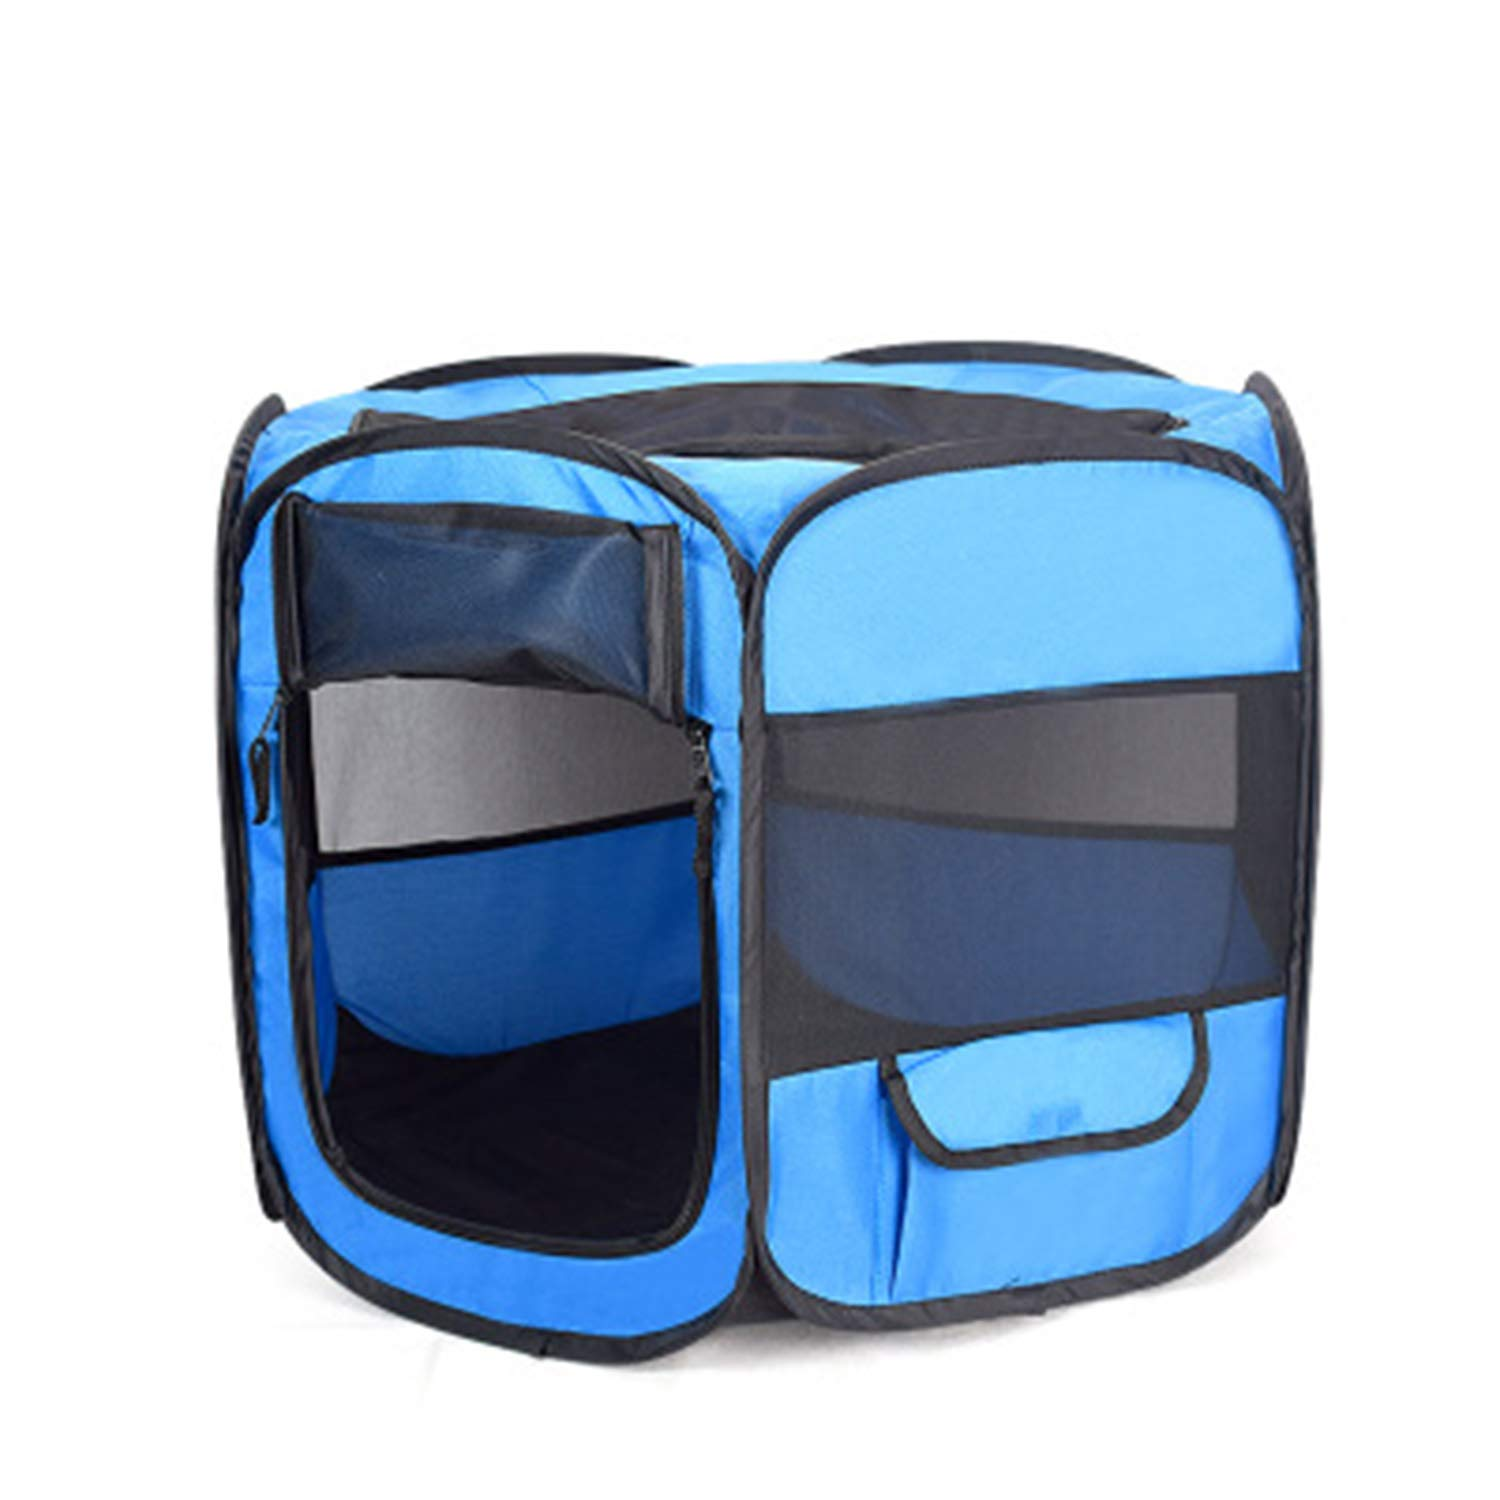 bluee MINI bluee MINI Car Kennel 600D Oxford Cloth Portable Foldable Pet Tent Cat and Dog Delivery Room Pet Fence